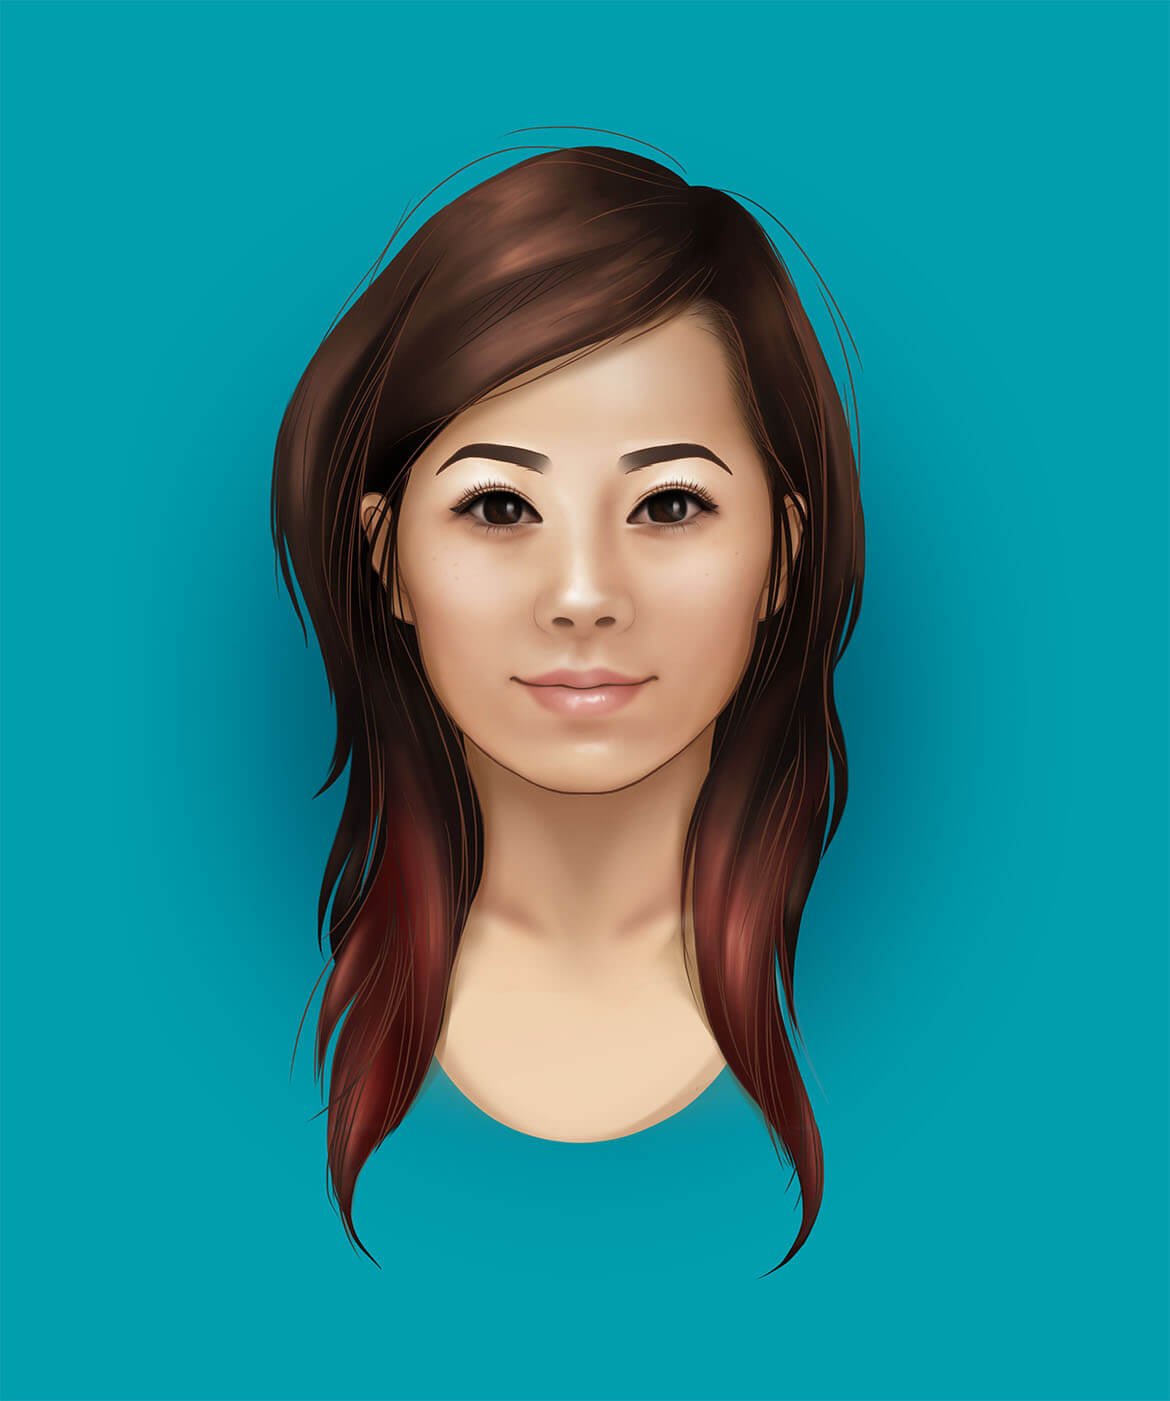 sheila shu self portrait drawn in Photoshop